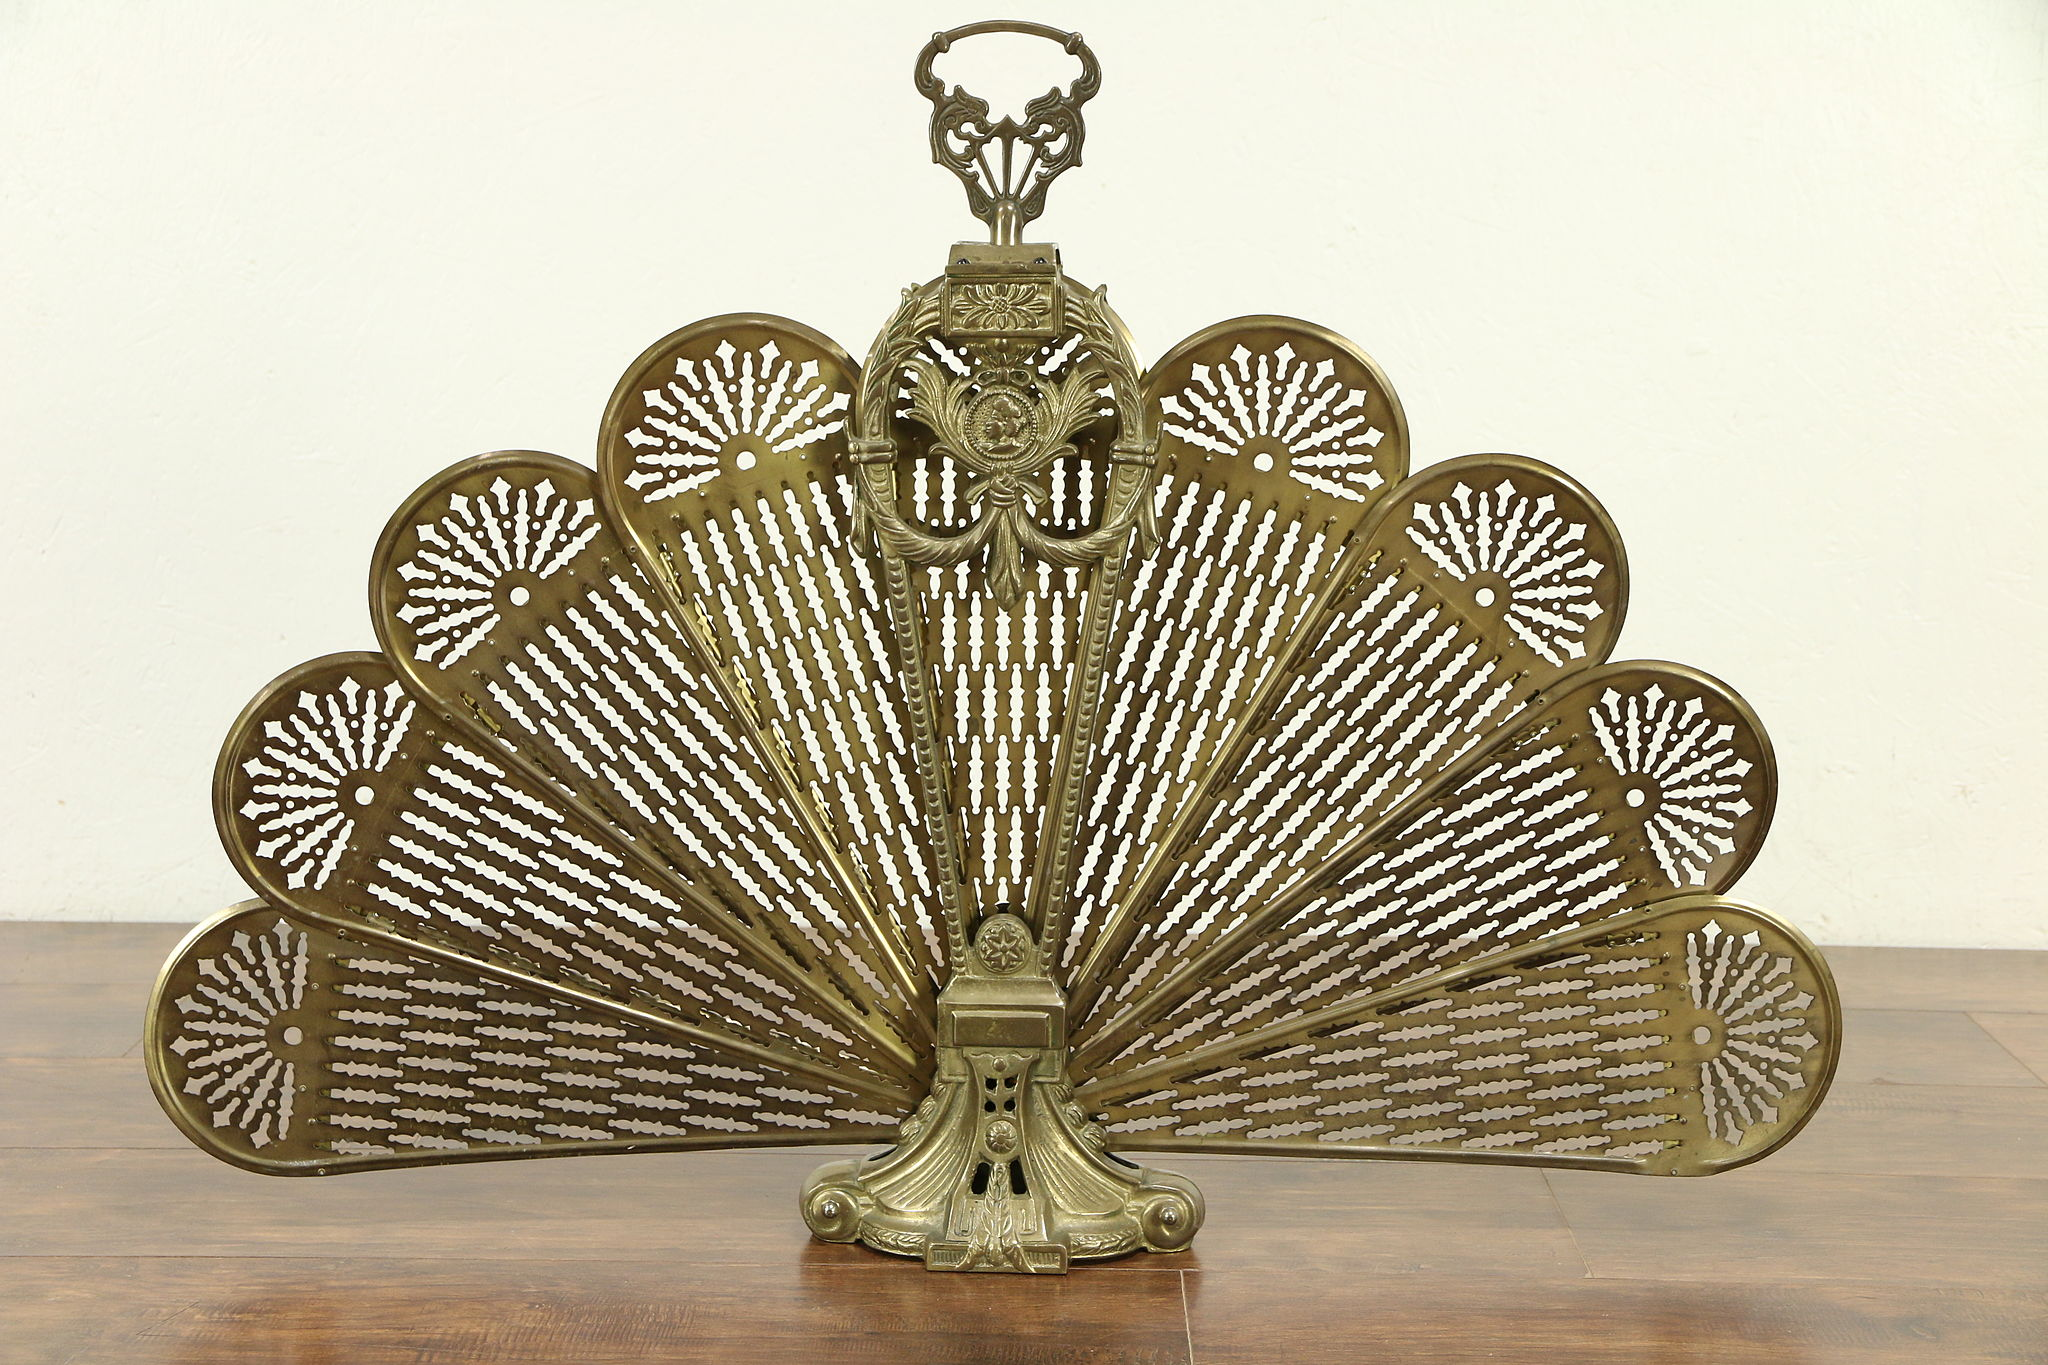 Sold Brass Peacock Fan Vintage Fireplace Screen With Face 29526